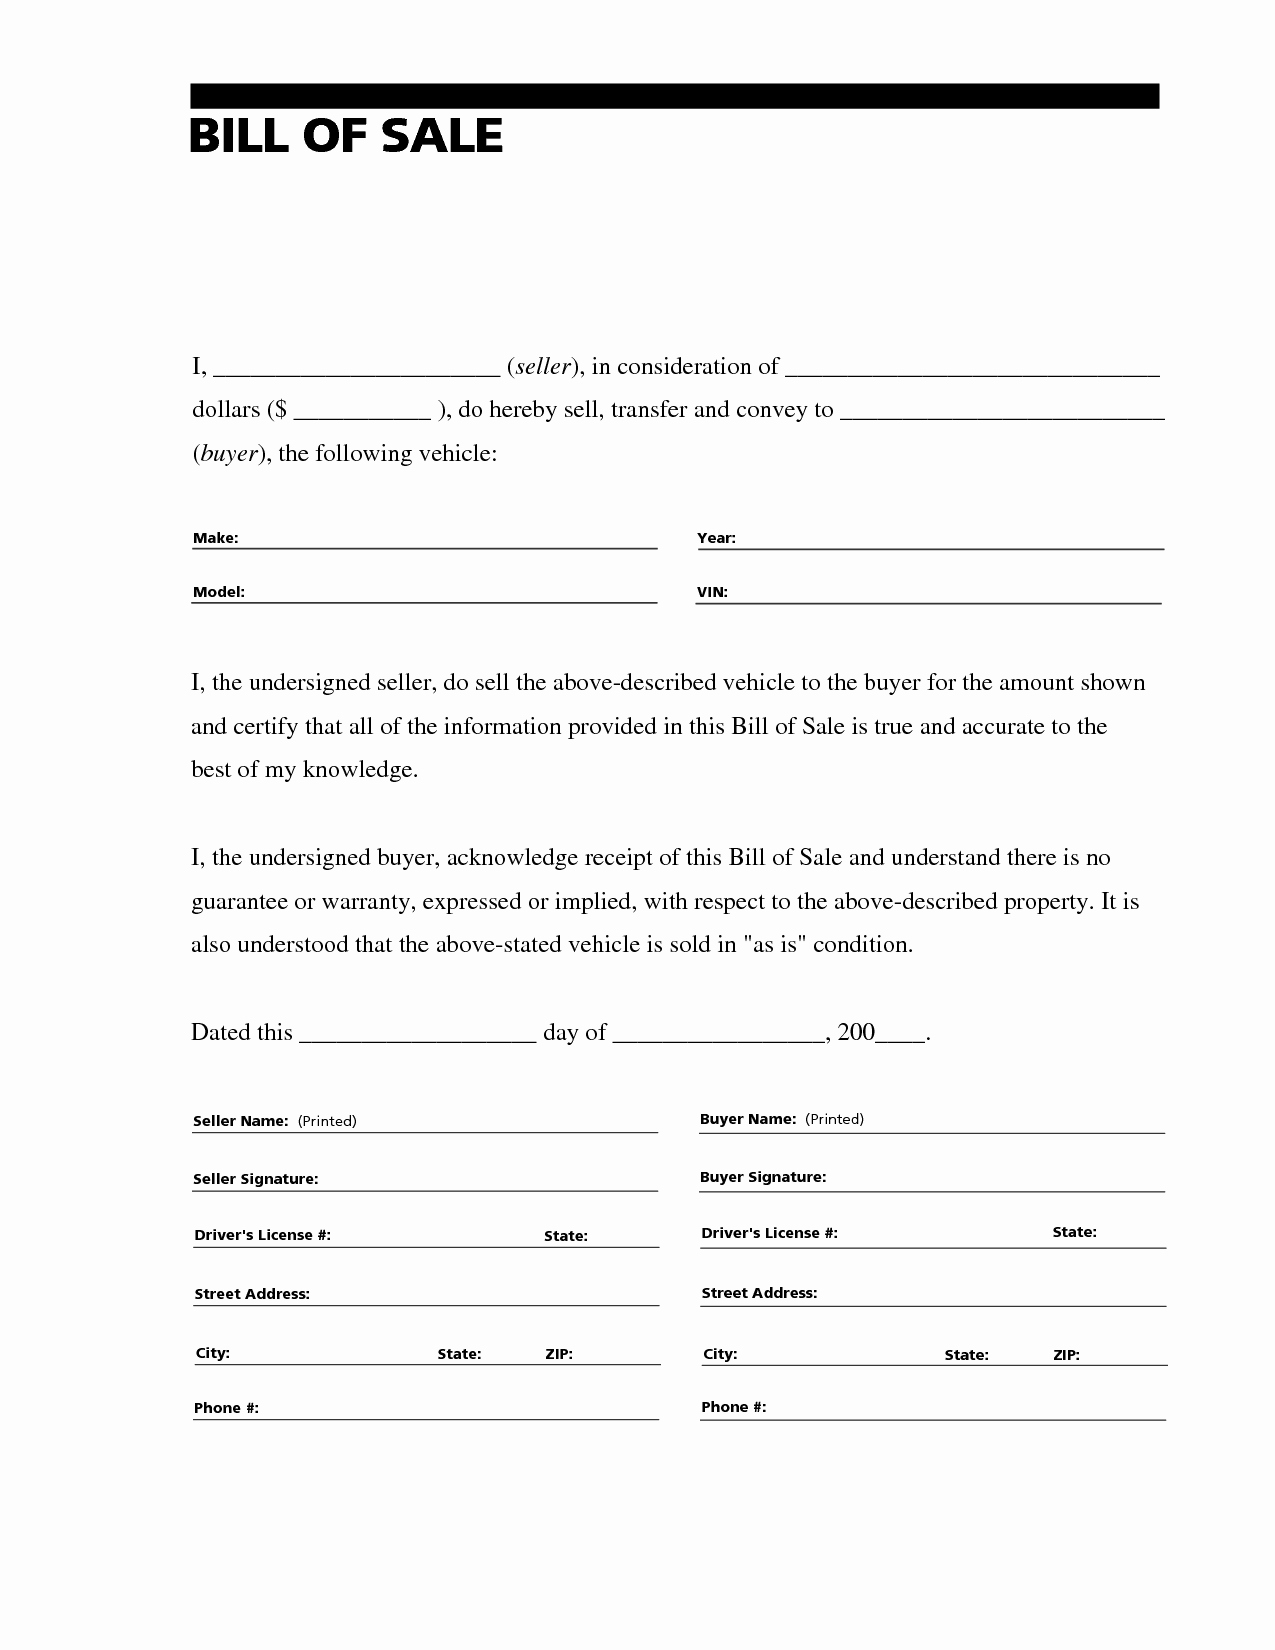 Dealer Bill Of Sale Template New Free Printable Bill Of Sale Templates form Generic